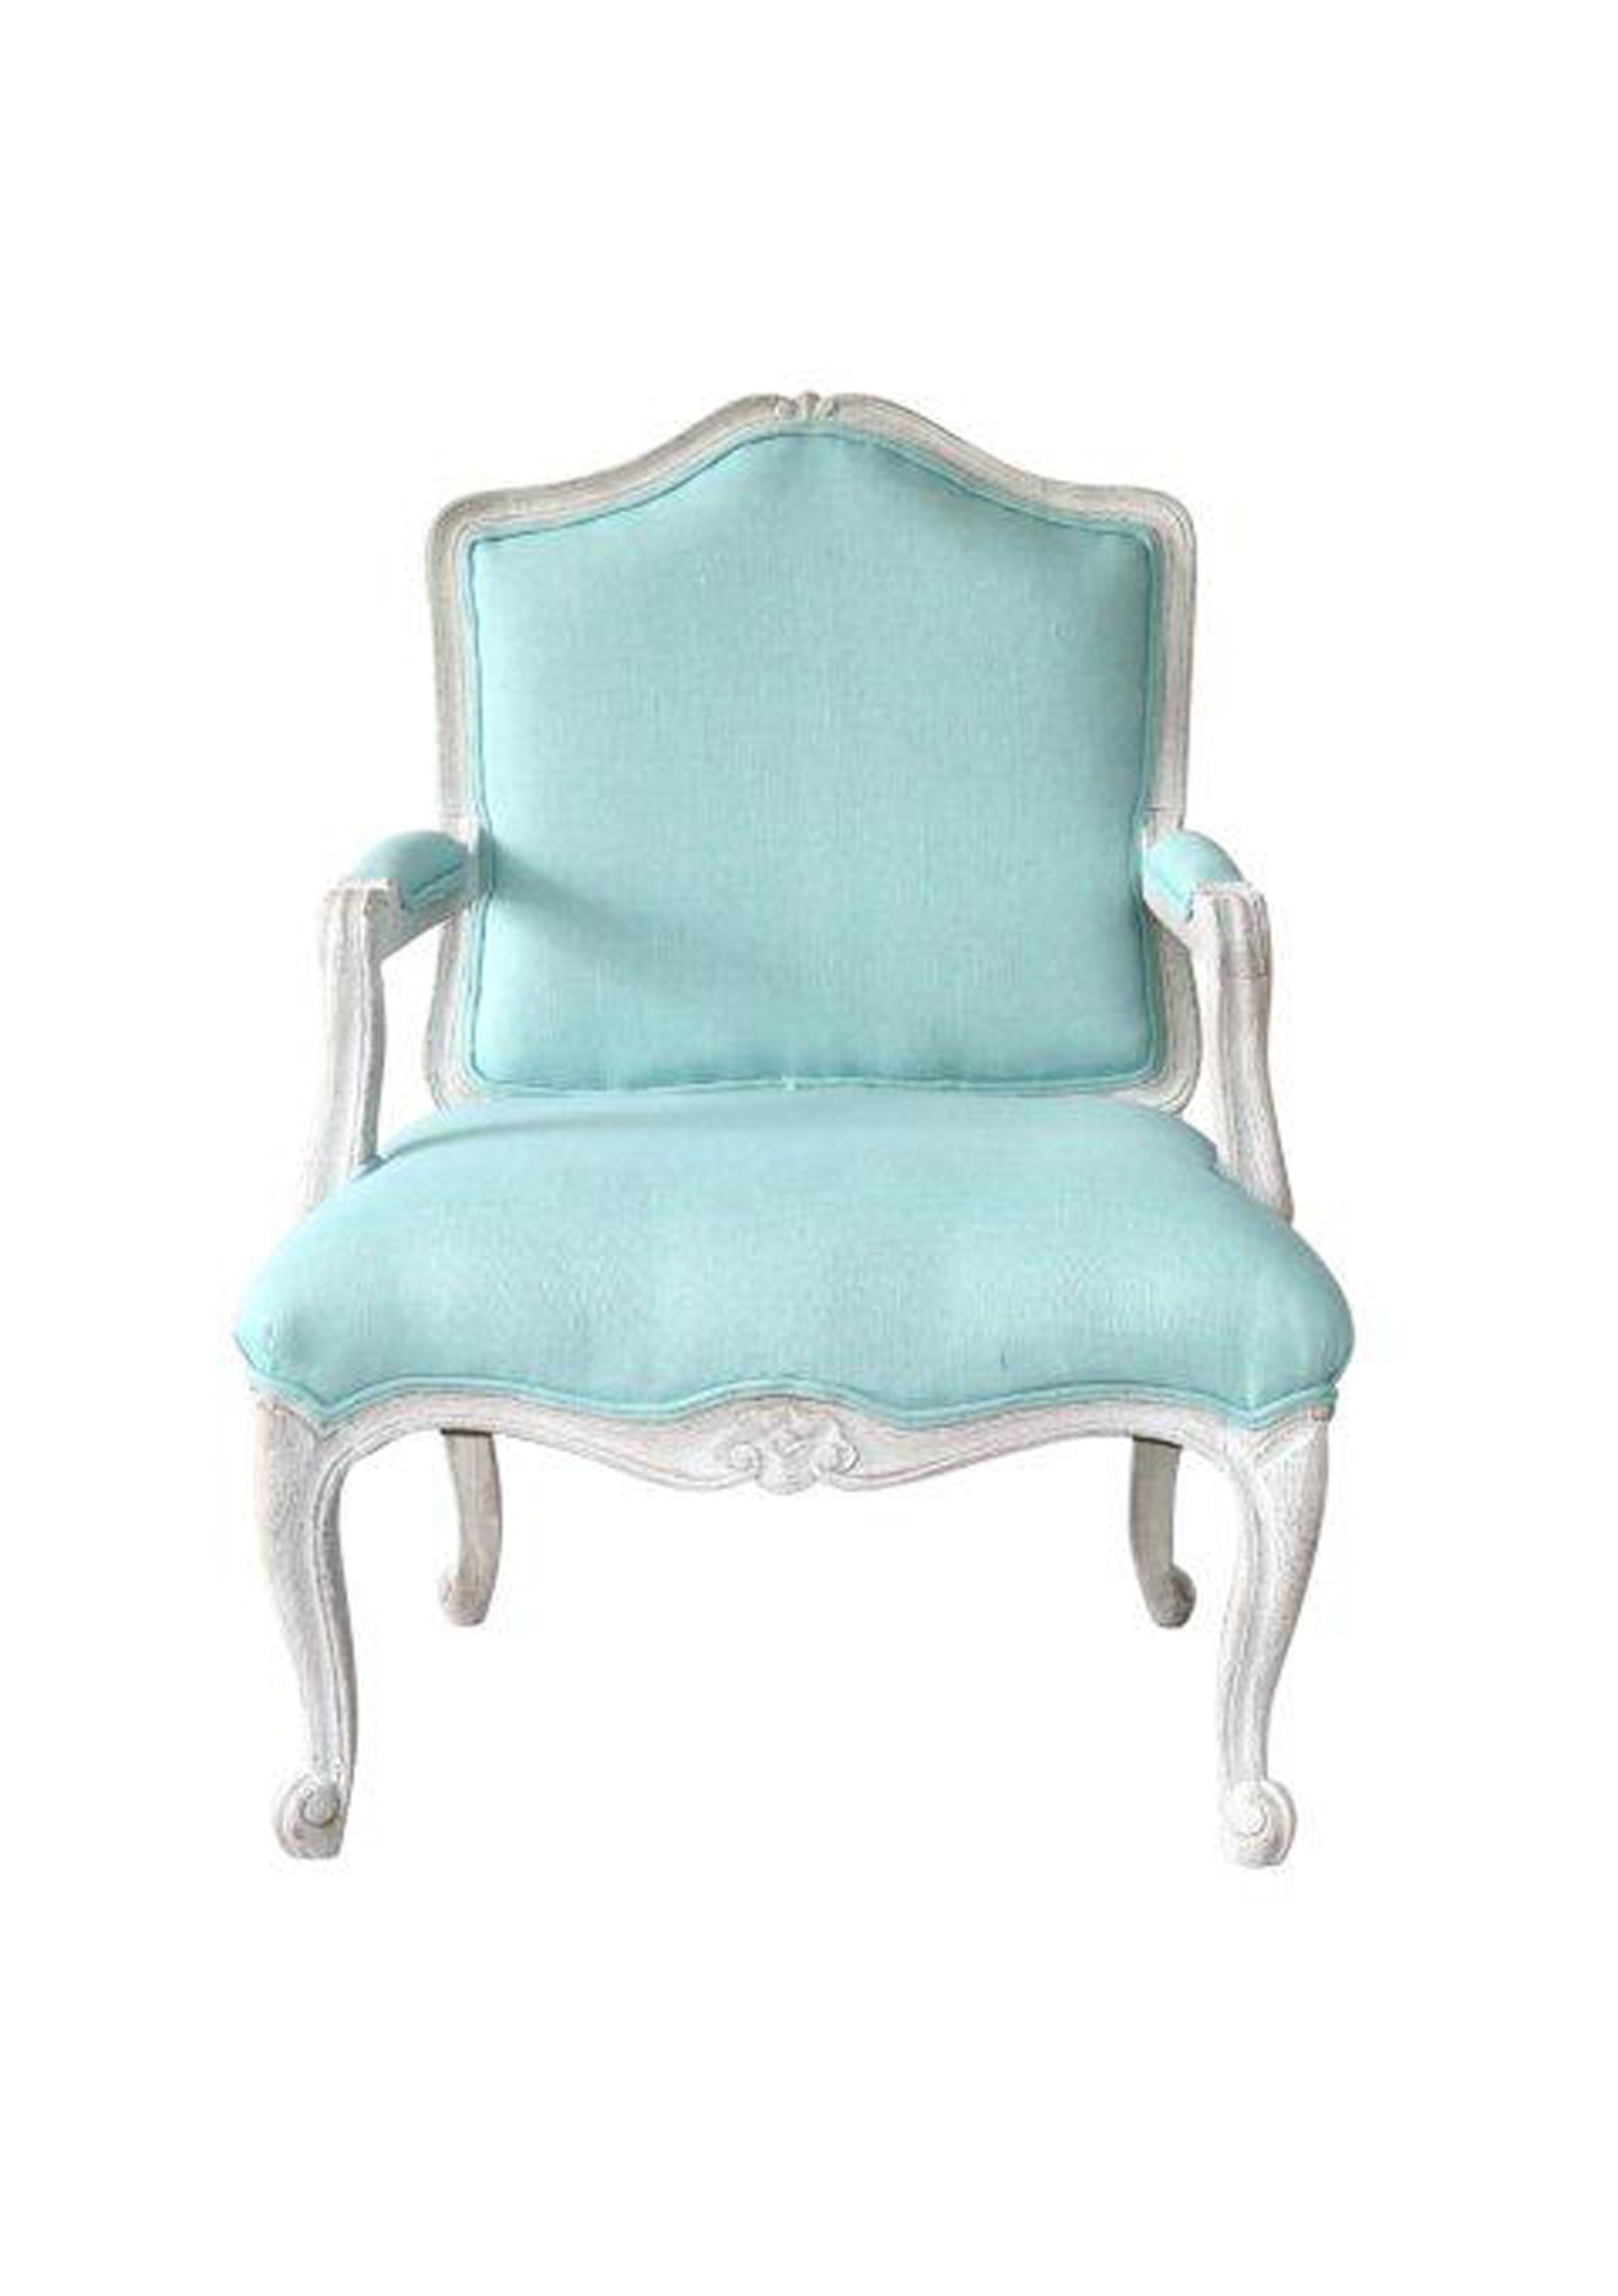 Velvet Arm Chair Turquoise The French Apartment ceit